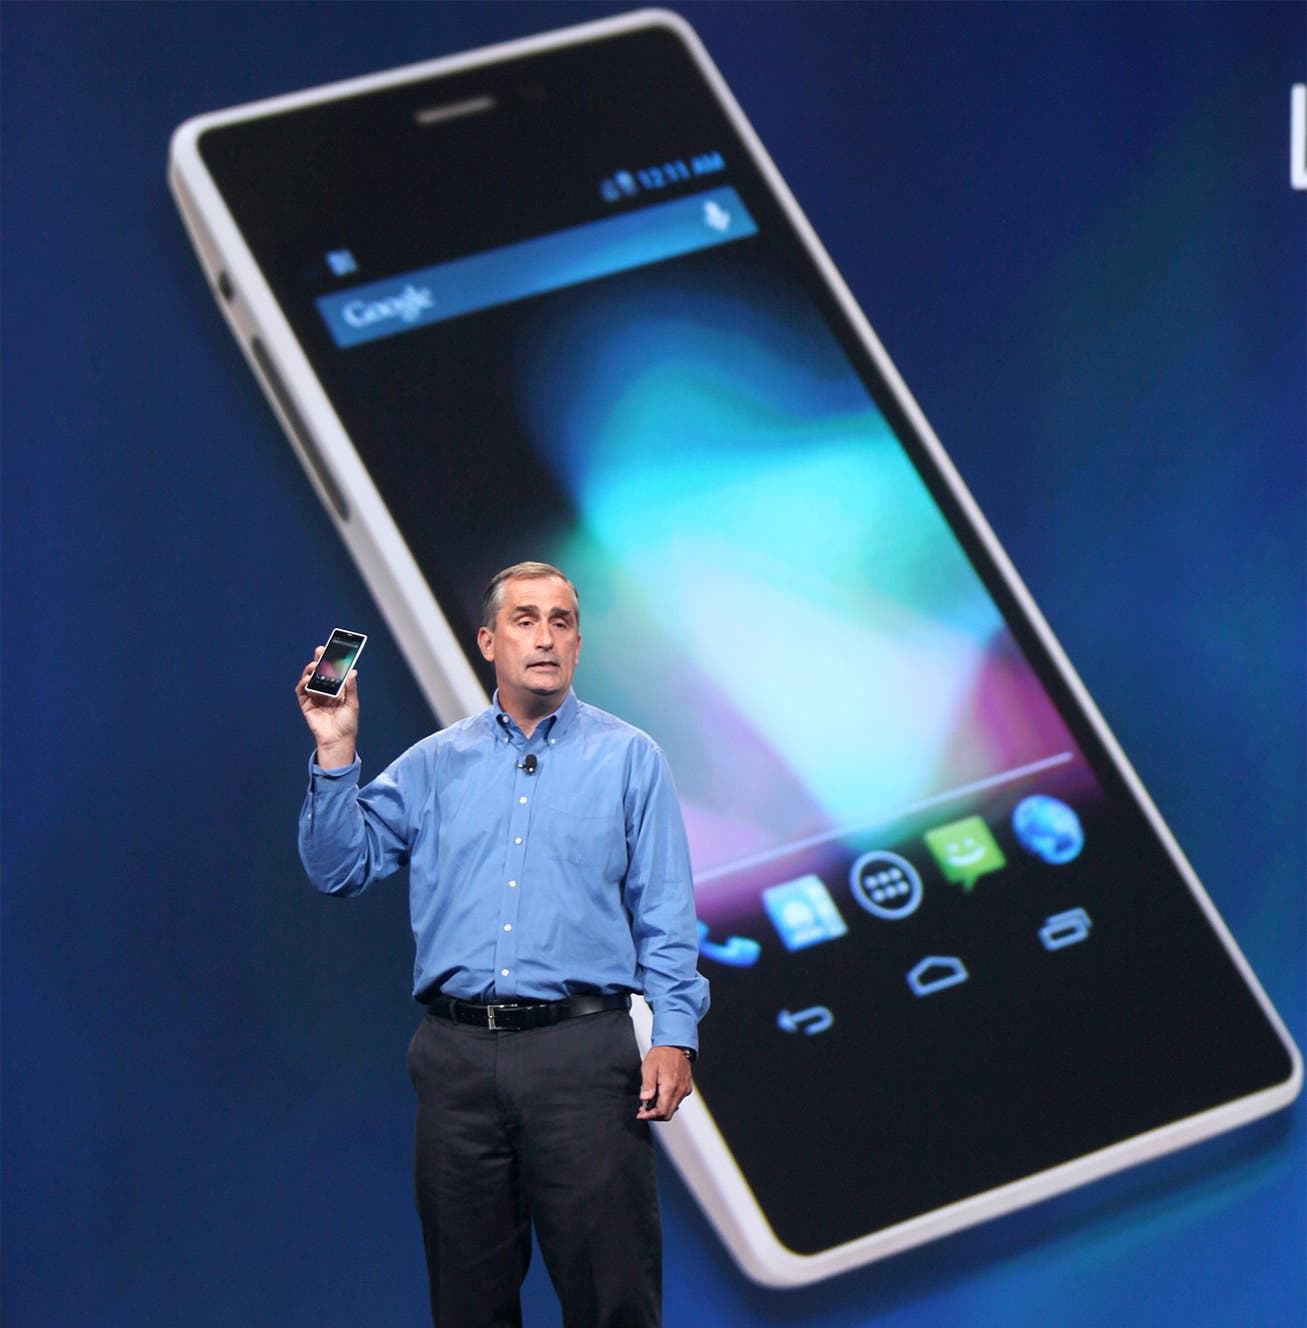 intel-salt-bay-merrifield-atom-smartphone